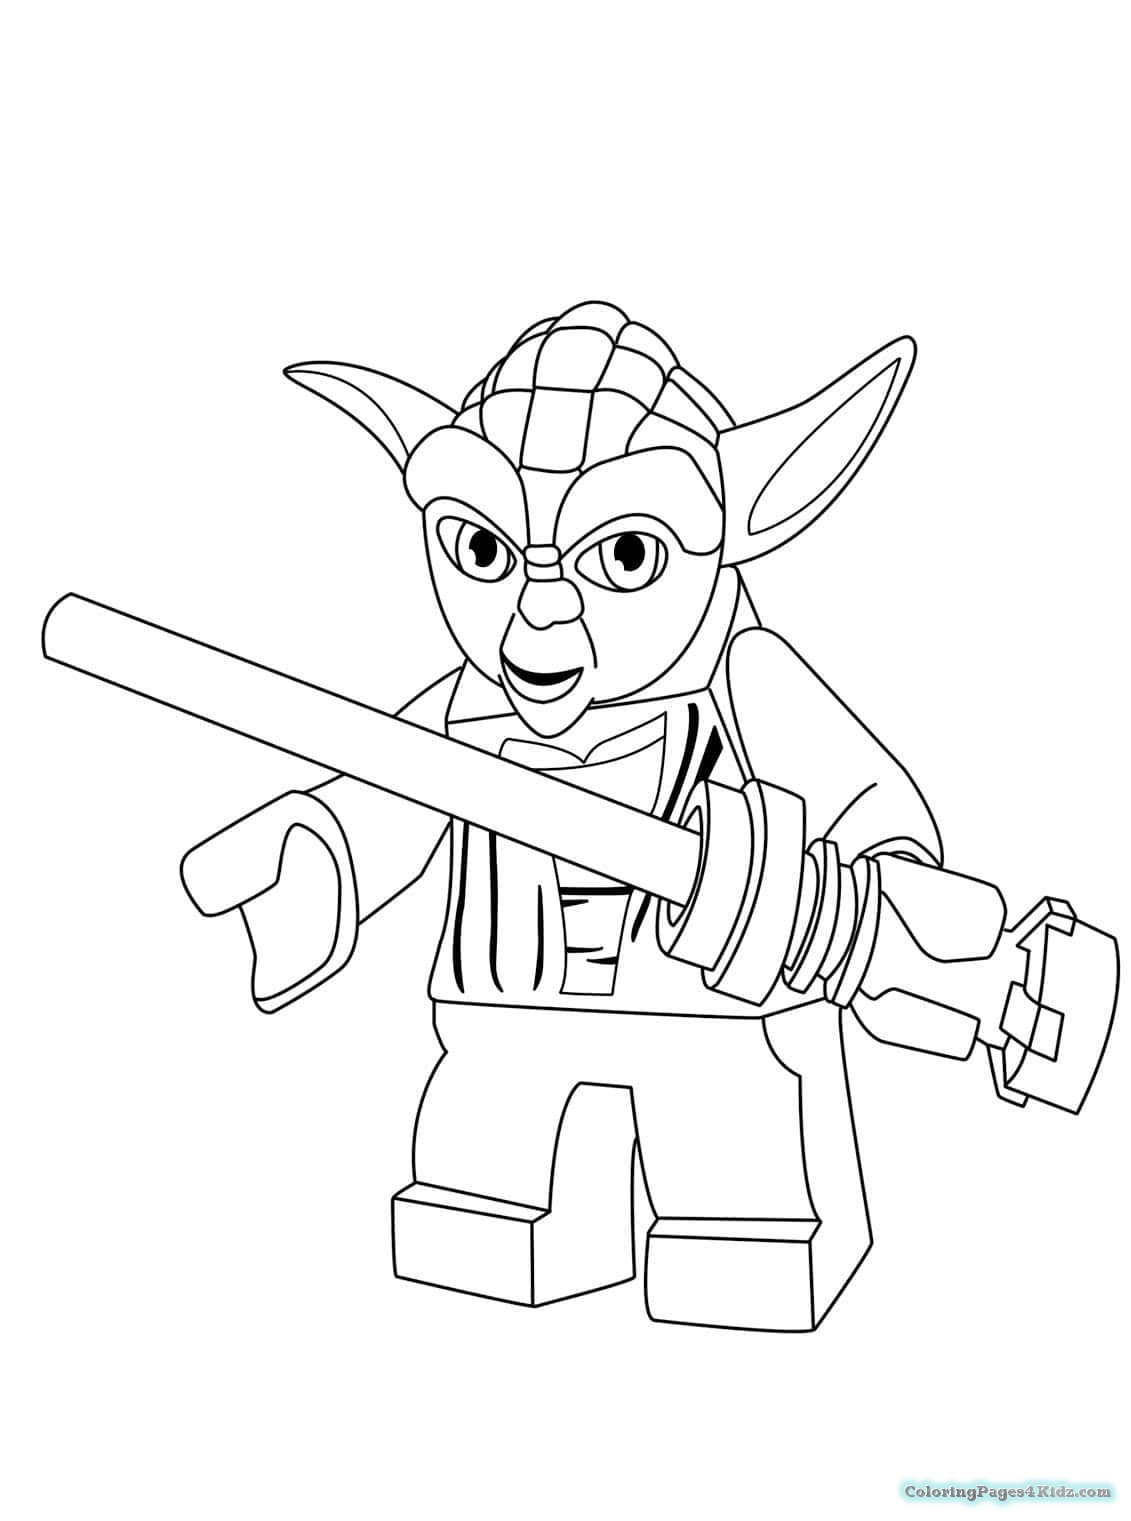 lego star wars colouring star wars the force awakens lego coloring pages coloring lego star colouring wars